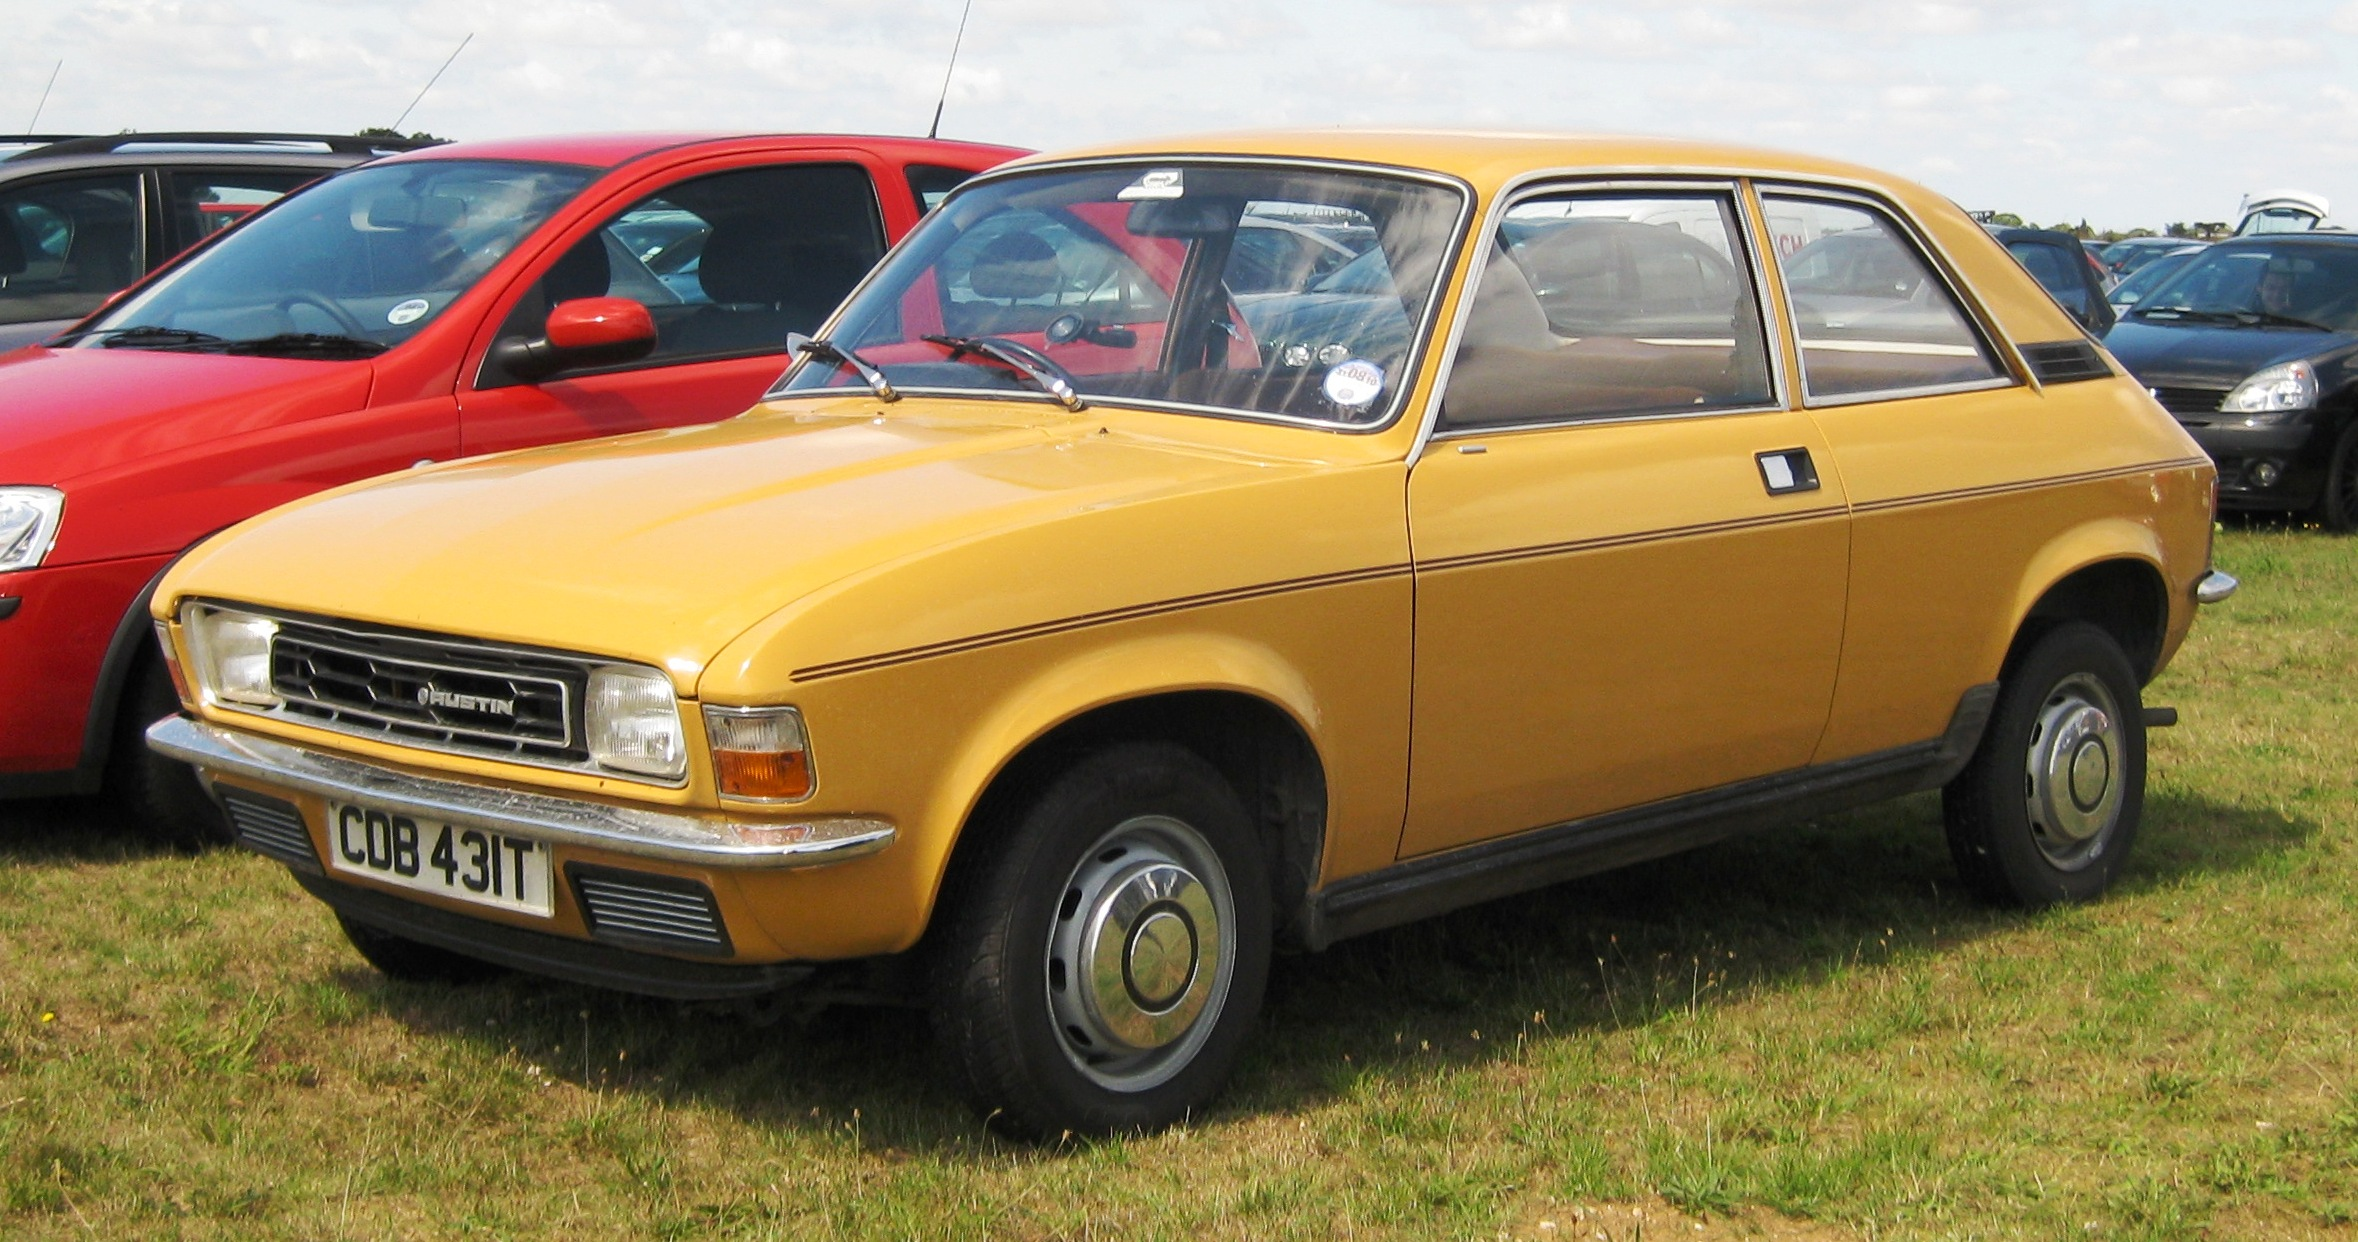 http://upload.wikimedia.org/wikipedia/commons/5/55/Austin_Allegro_2_door_1275cc_March_1979.JPG